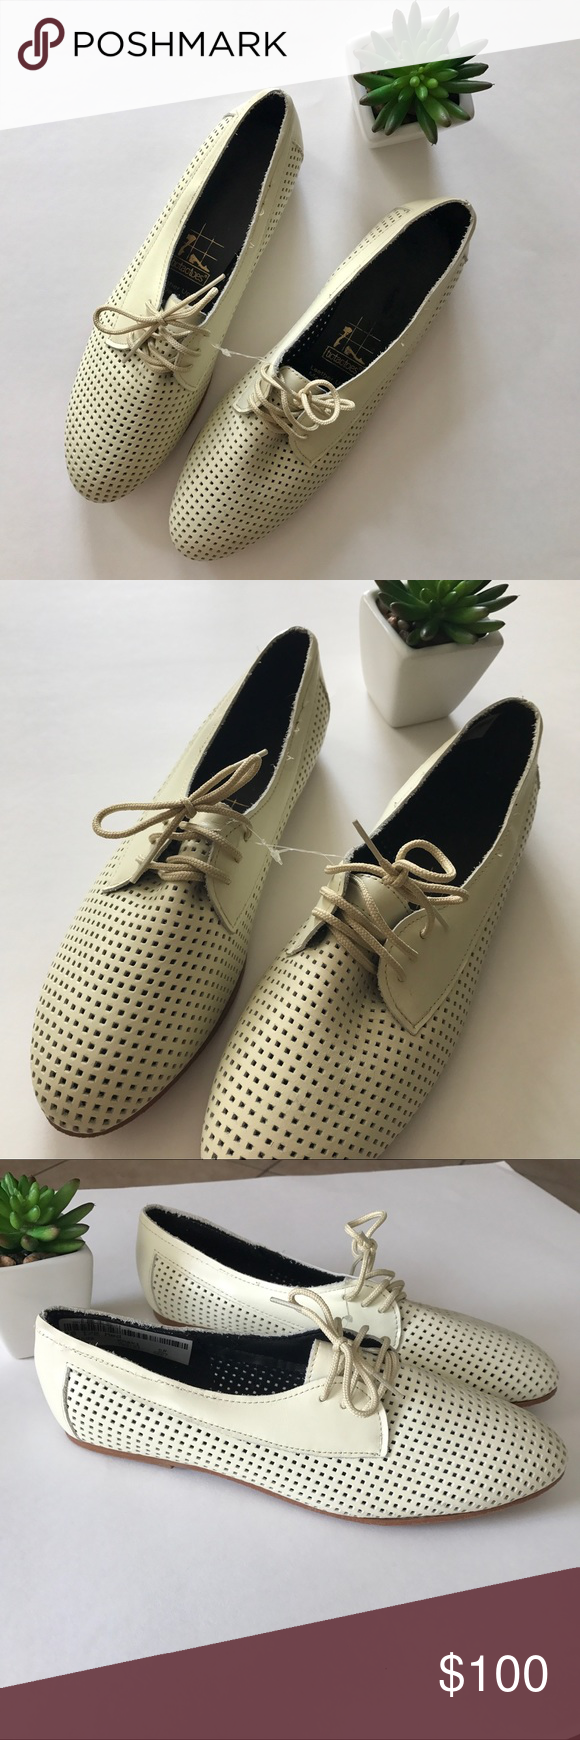 4d702af218 American Apparel Amanda Shoe RARE NWT Iconic Amanda oxford loafers in Khaki  leather. tictactoes for American Apparel. Size 10.5. Run small.